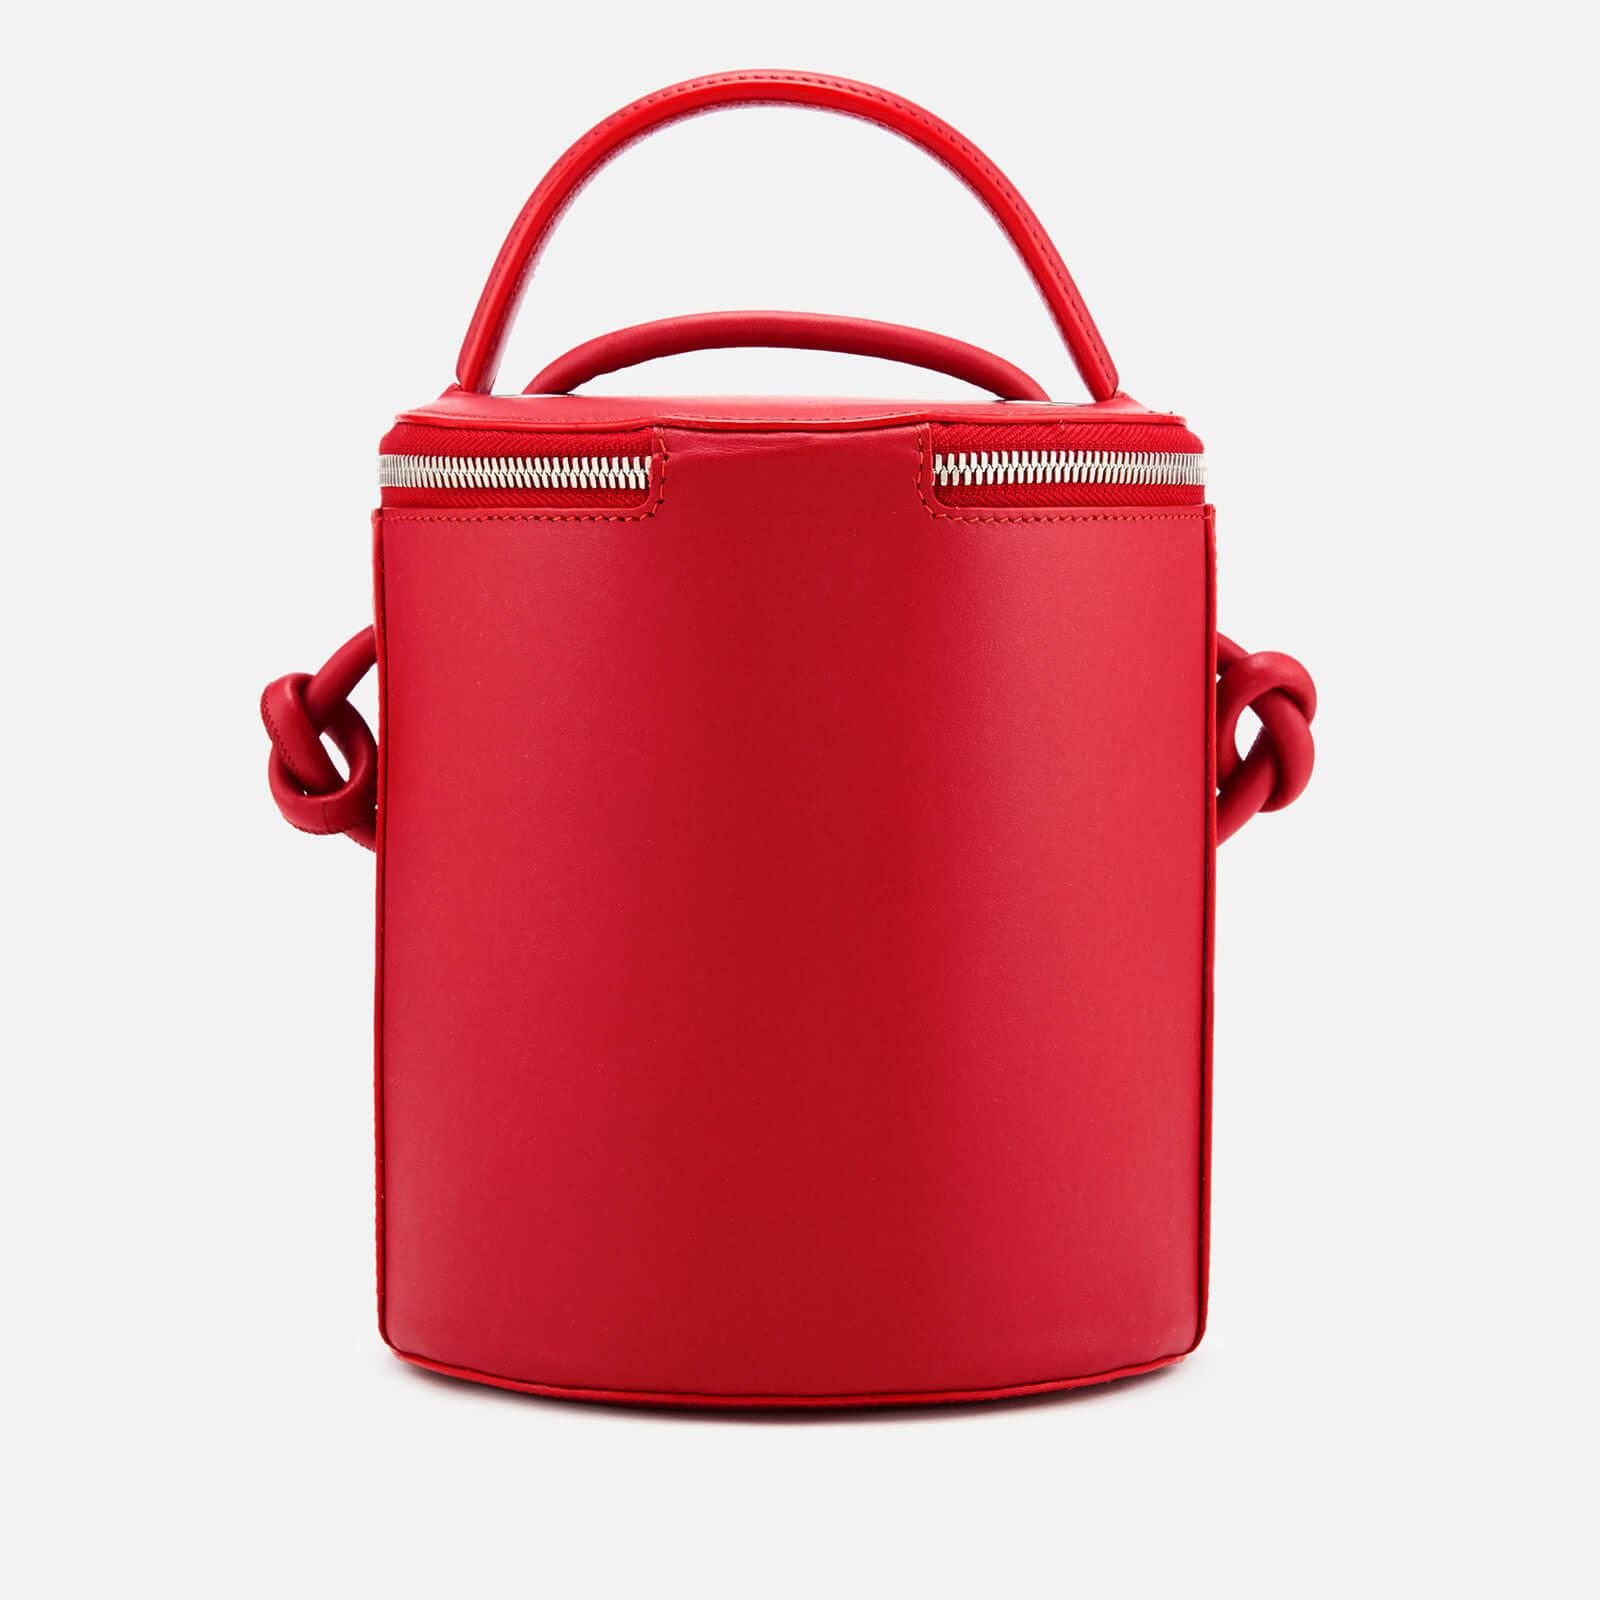 d2326d5f4cc Lyst - meli melo Severine Bucket Bag in Red